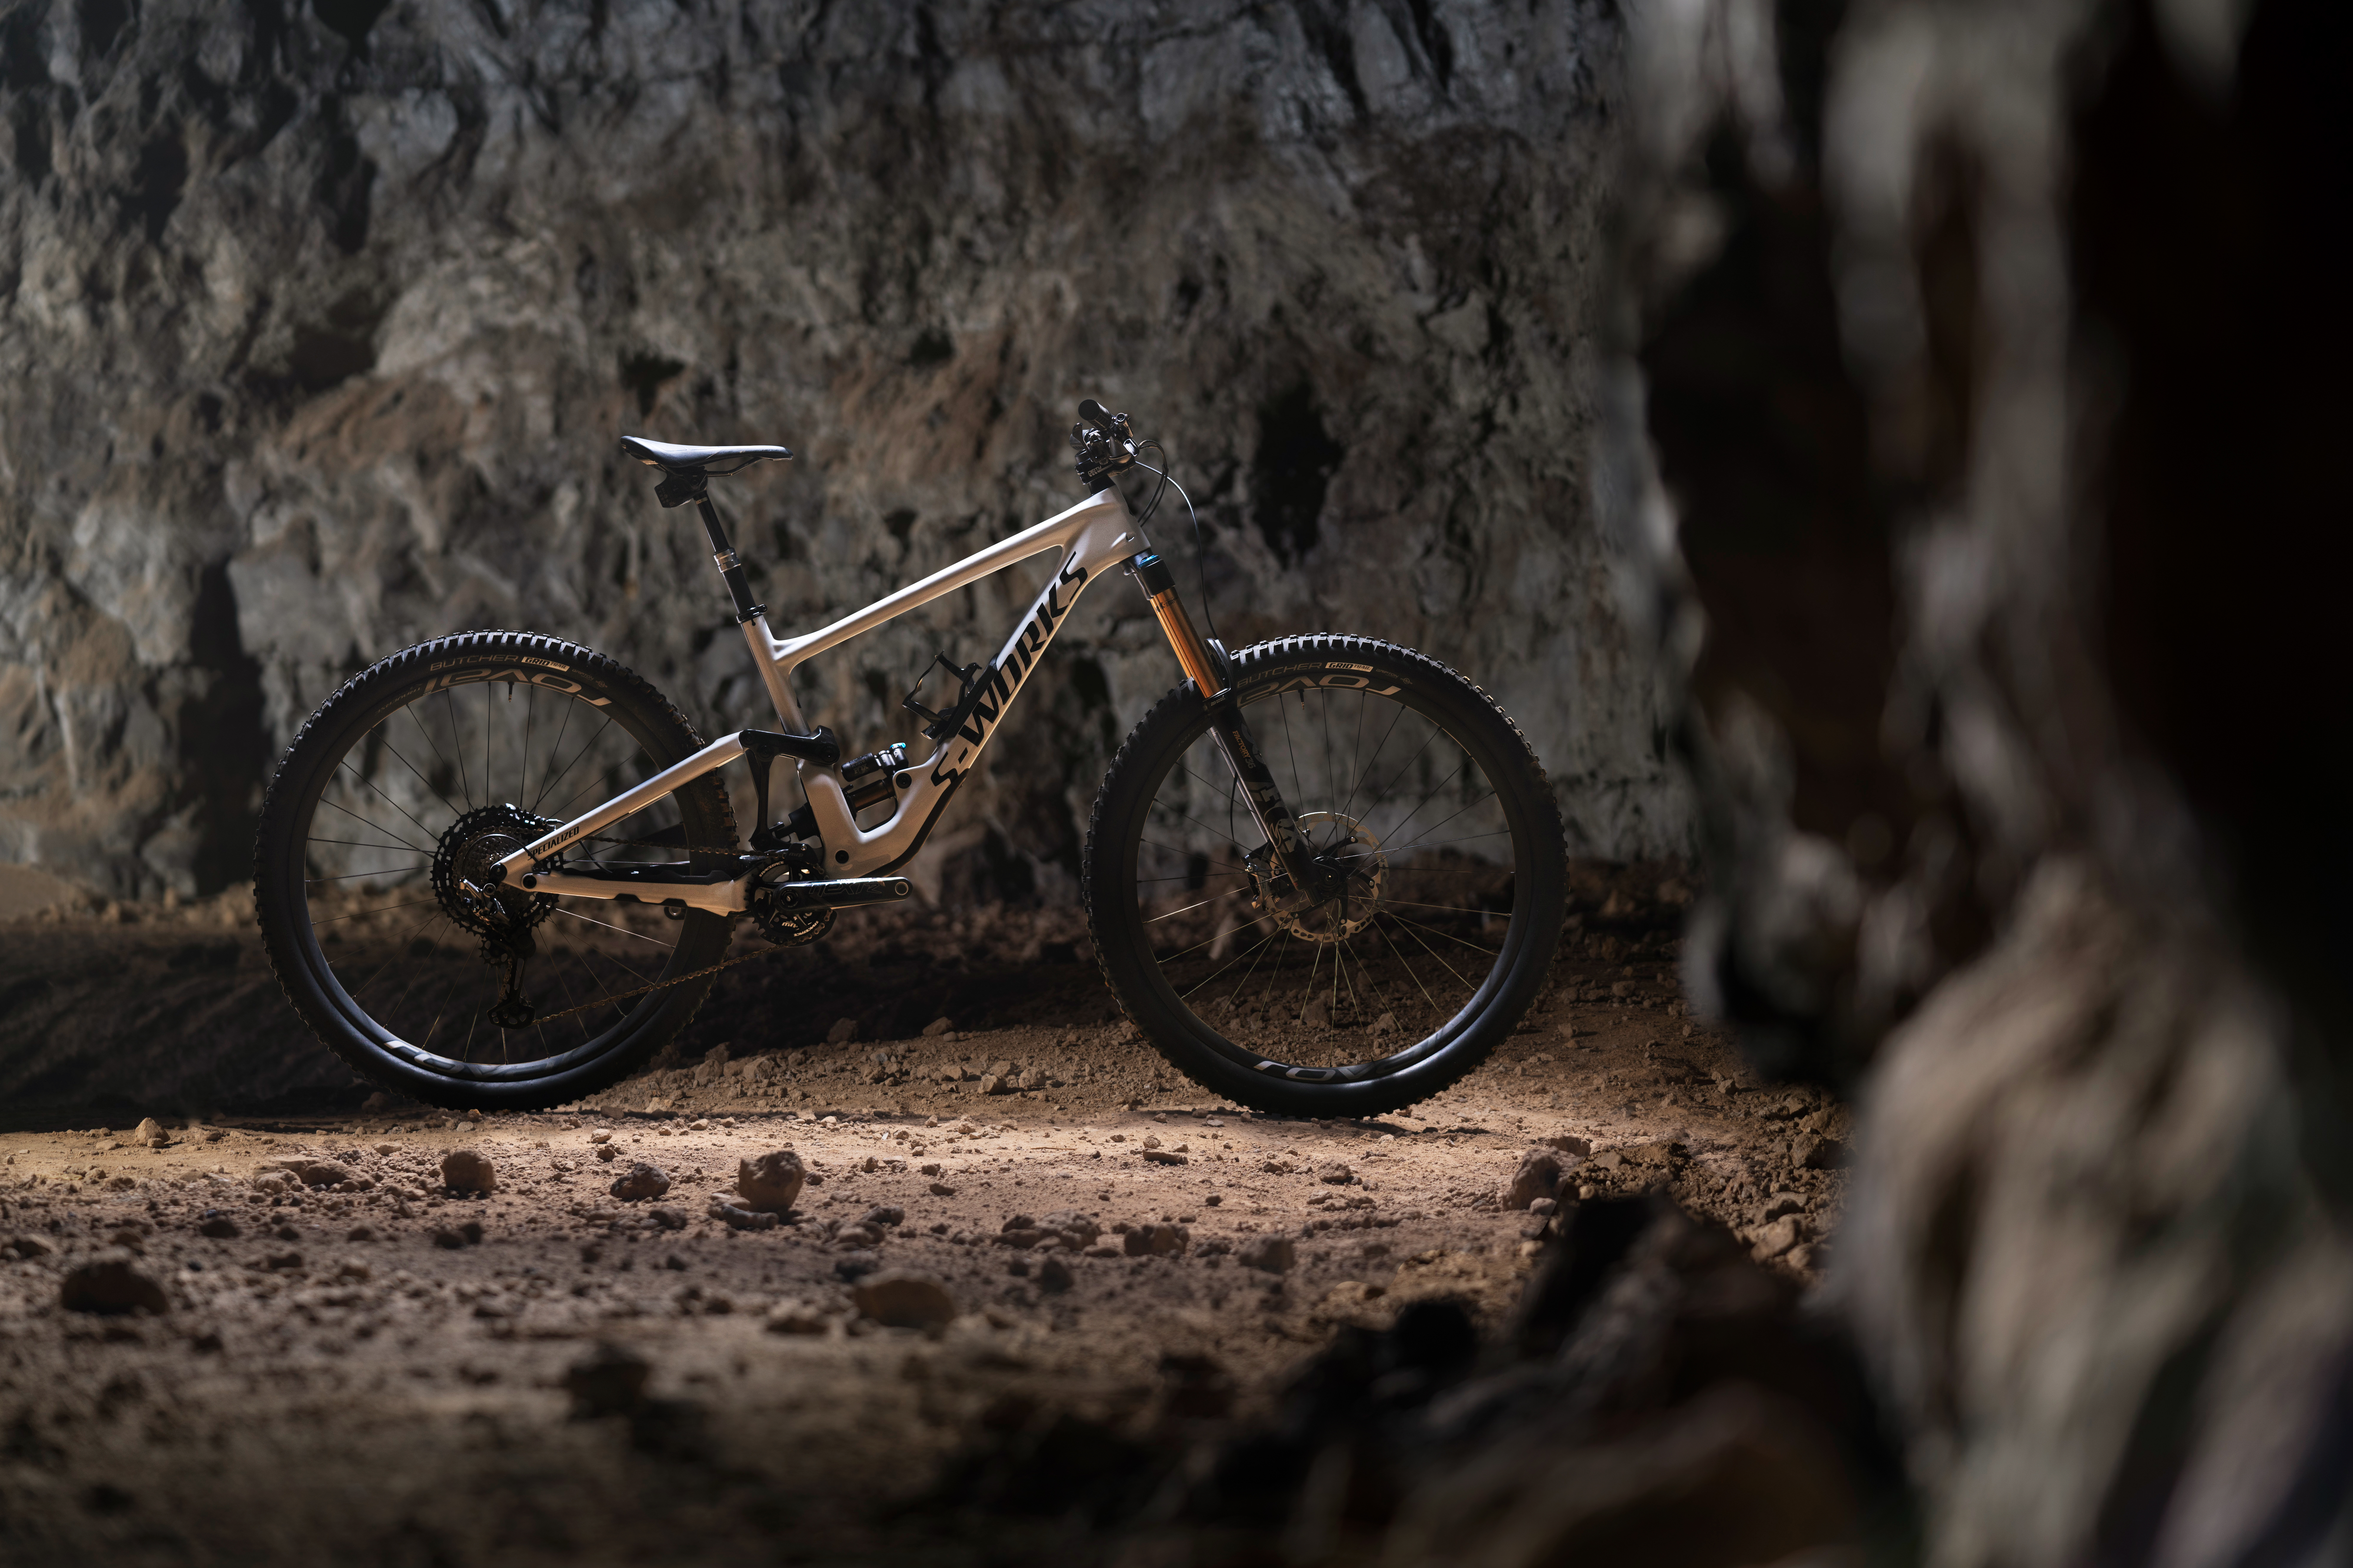 The 2020 Specialized Enduro Mountain Bike is Overhauled and